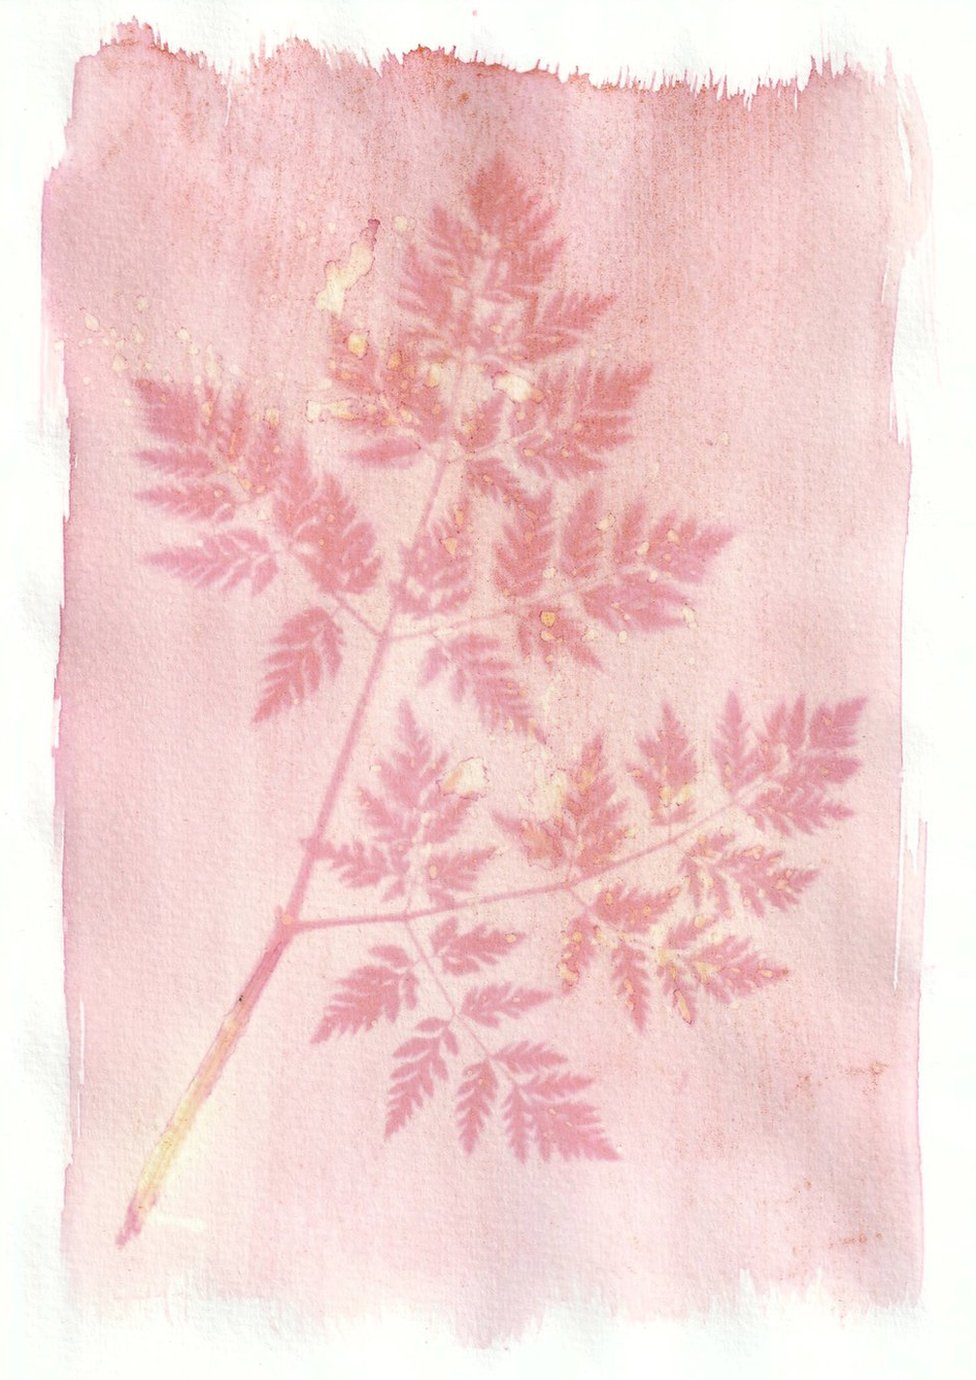 An anthotype print of a pink piece of foliage